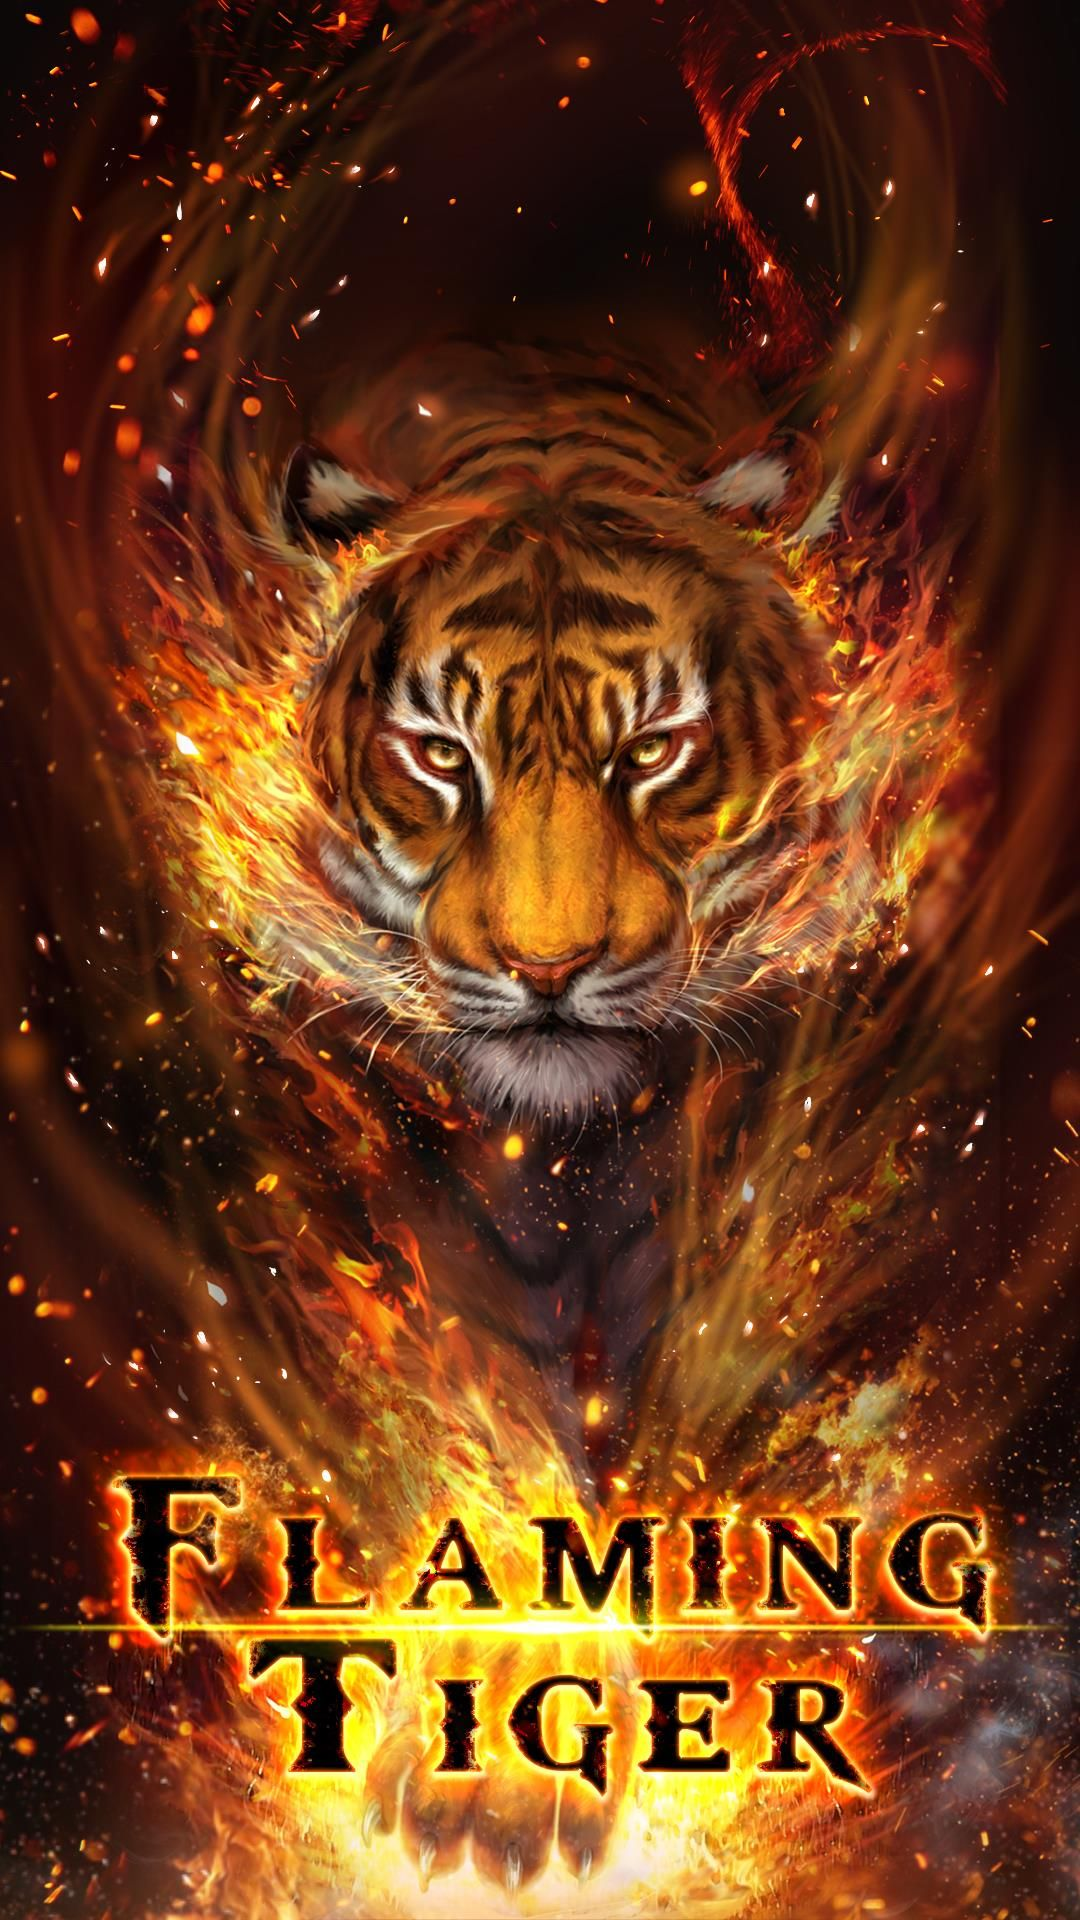 Cool Fire Tiger Flame Flaming Live Wallpaper